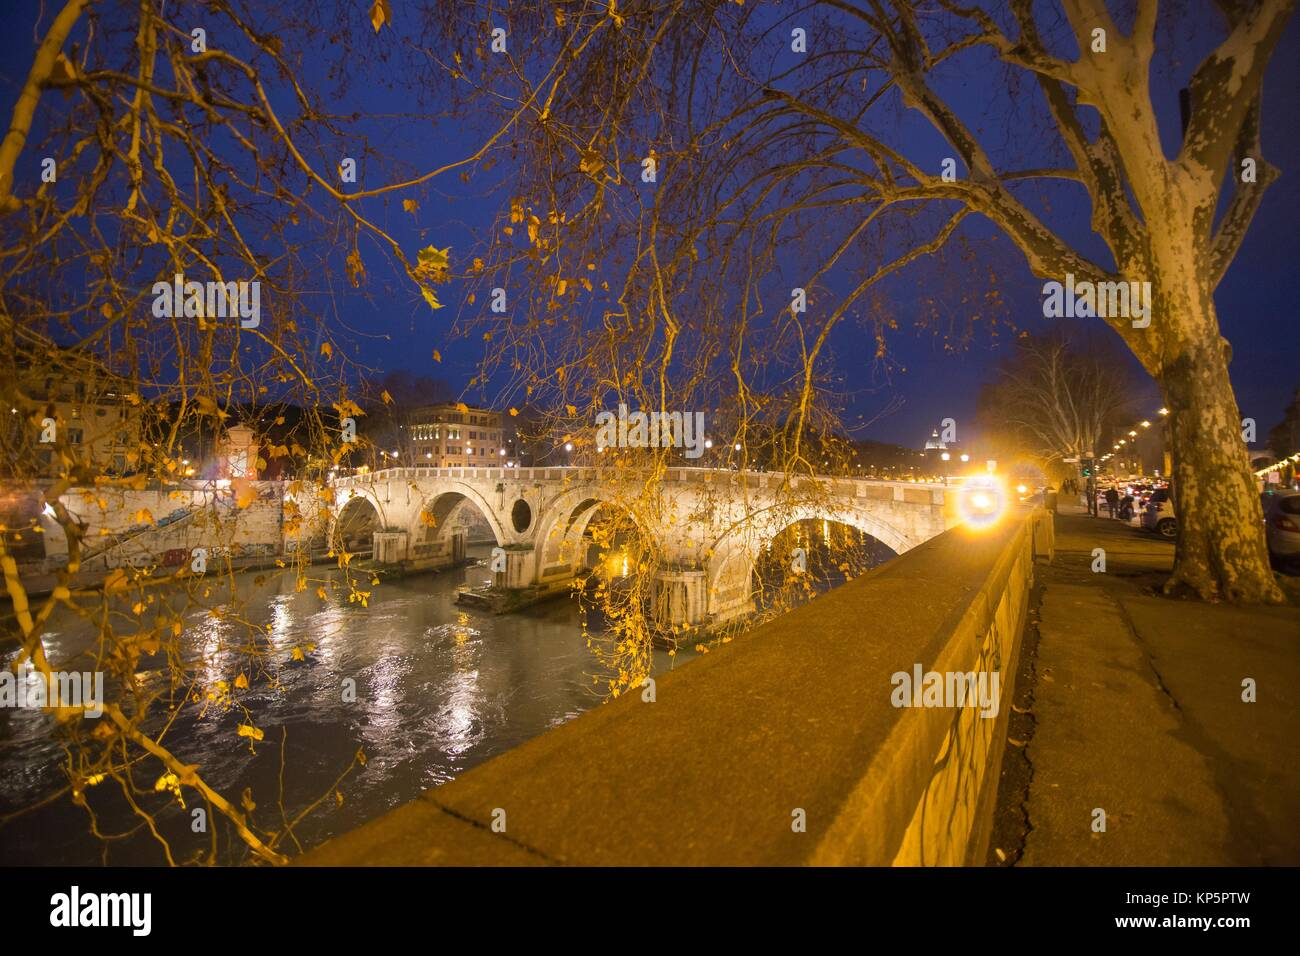 Nightscape in the banks of Tiber river Rome Italy. - Stock Image